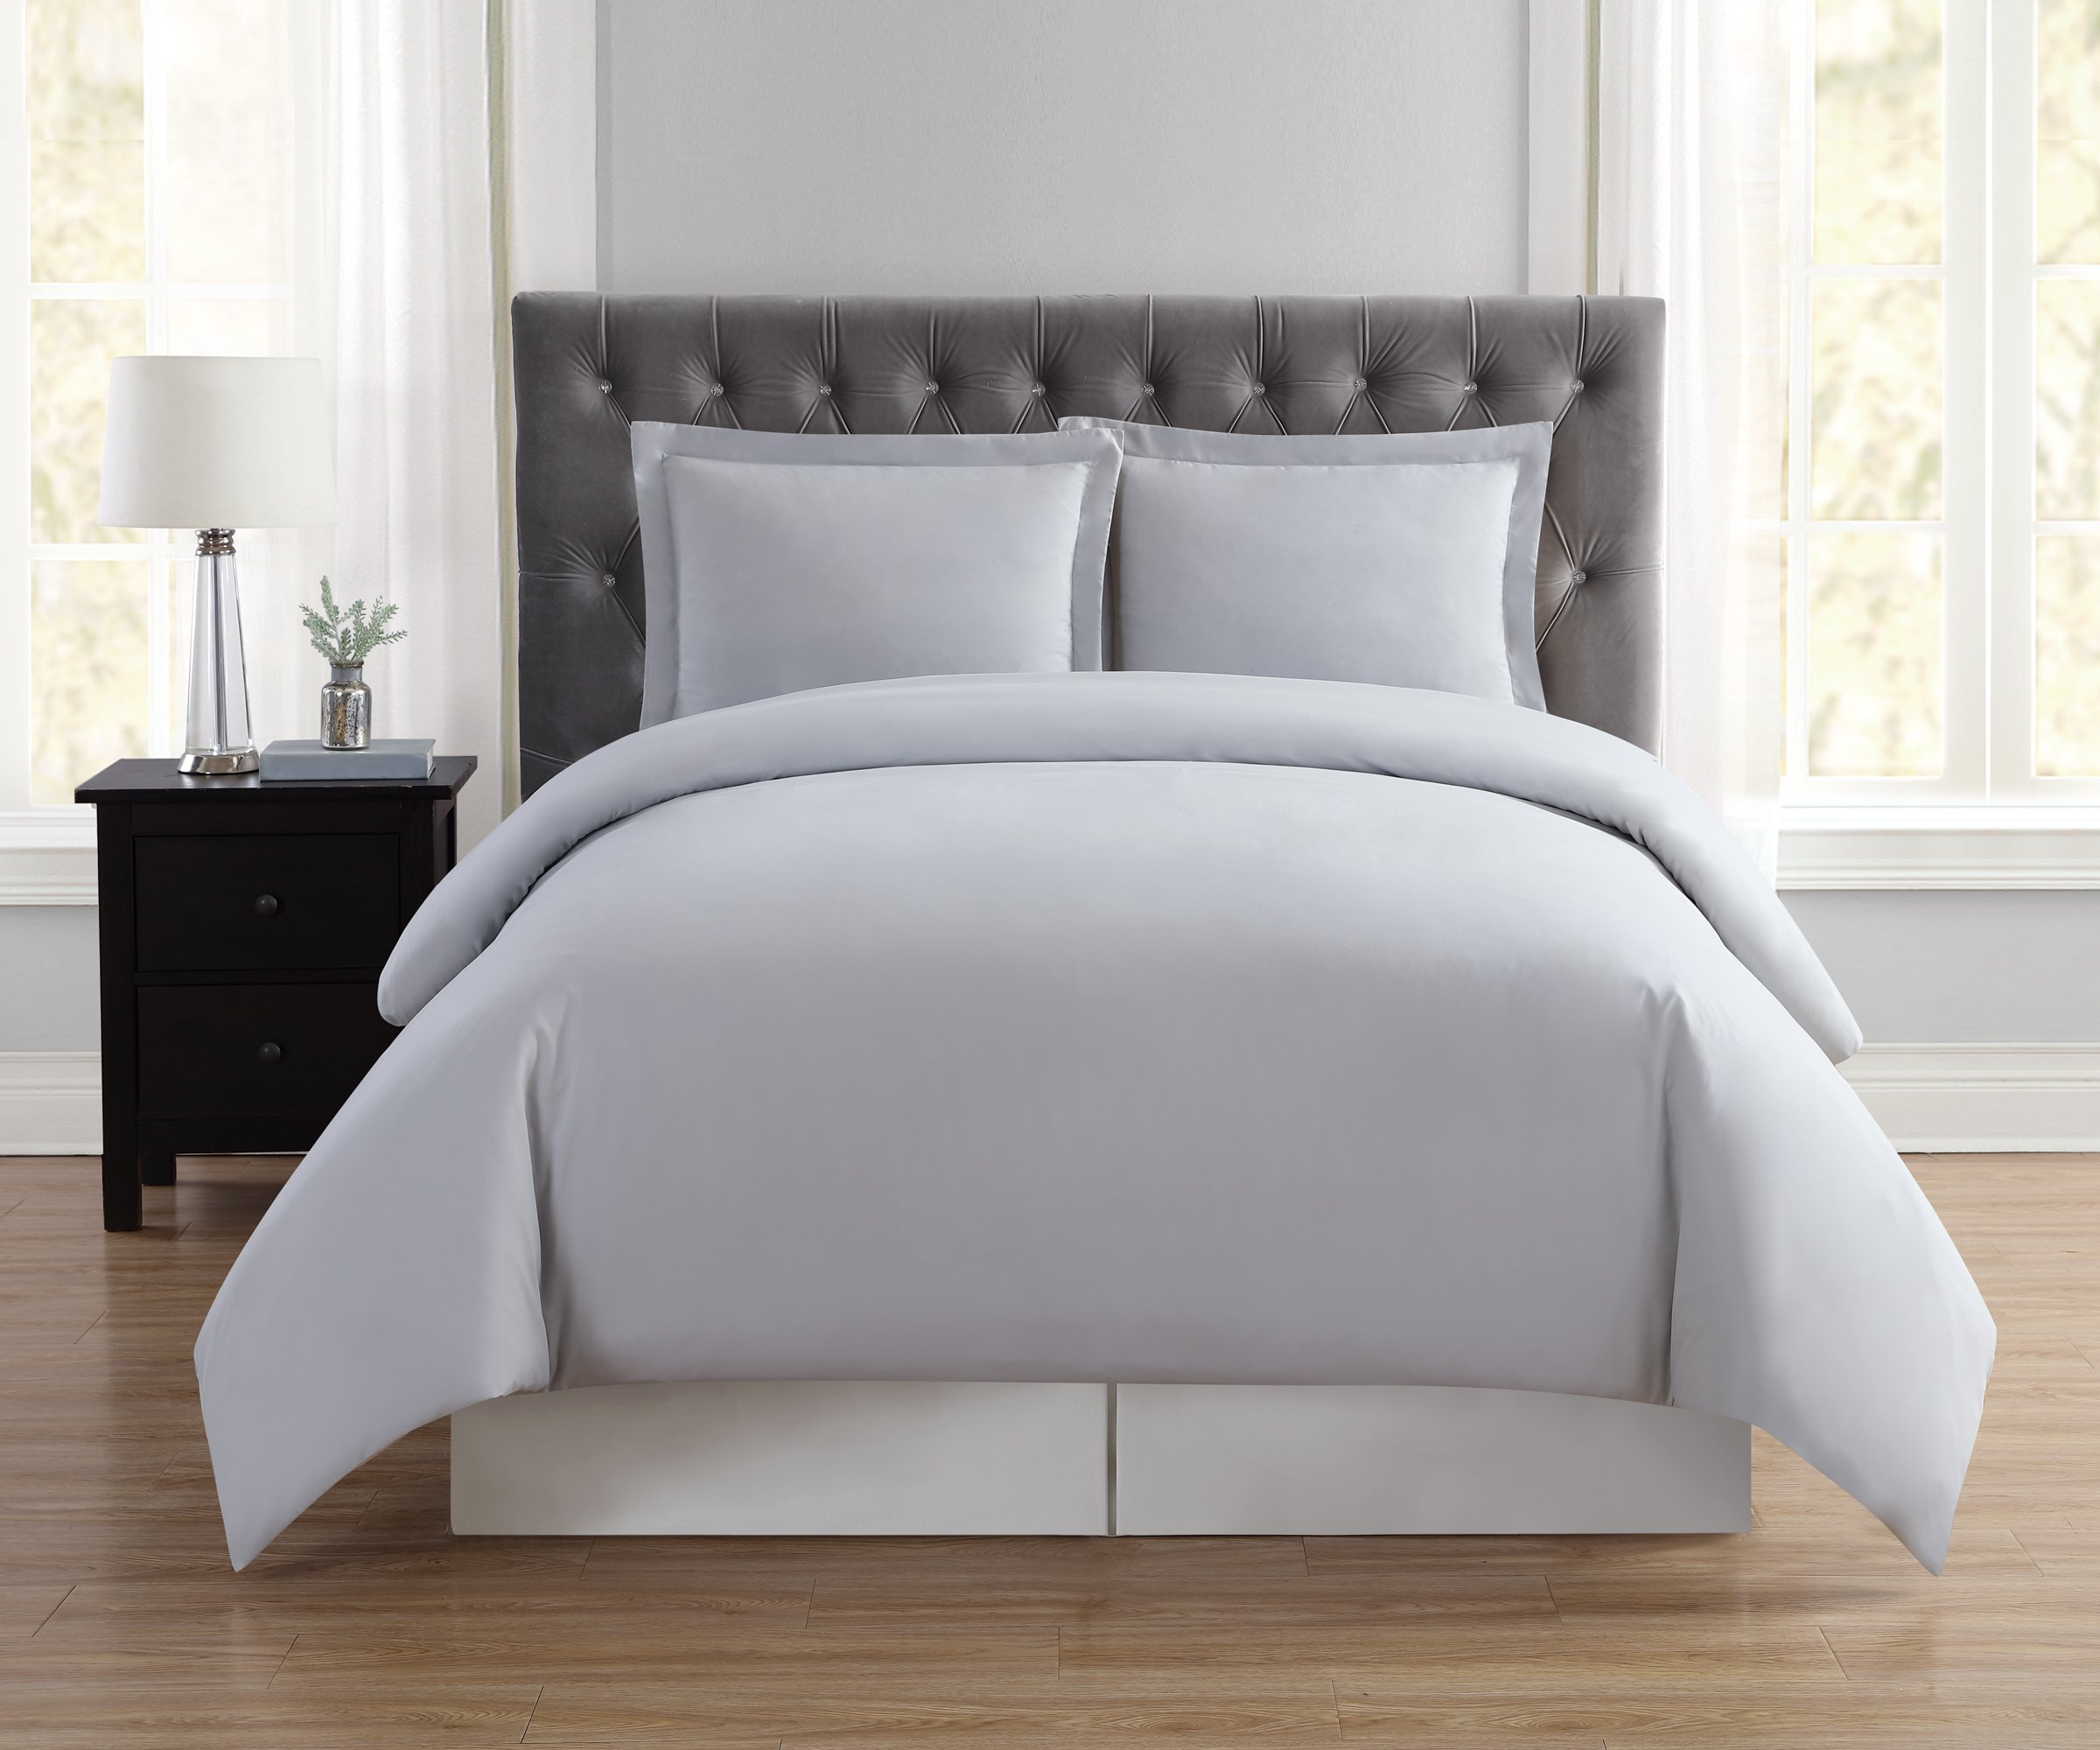 Truly Soft Everyday Elegant Duvet Set, Full/Queen, Silver Grey by Truly Soft Everyday